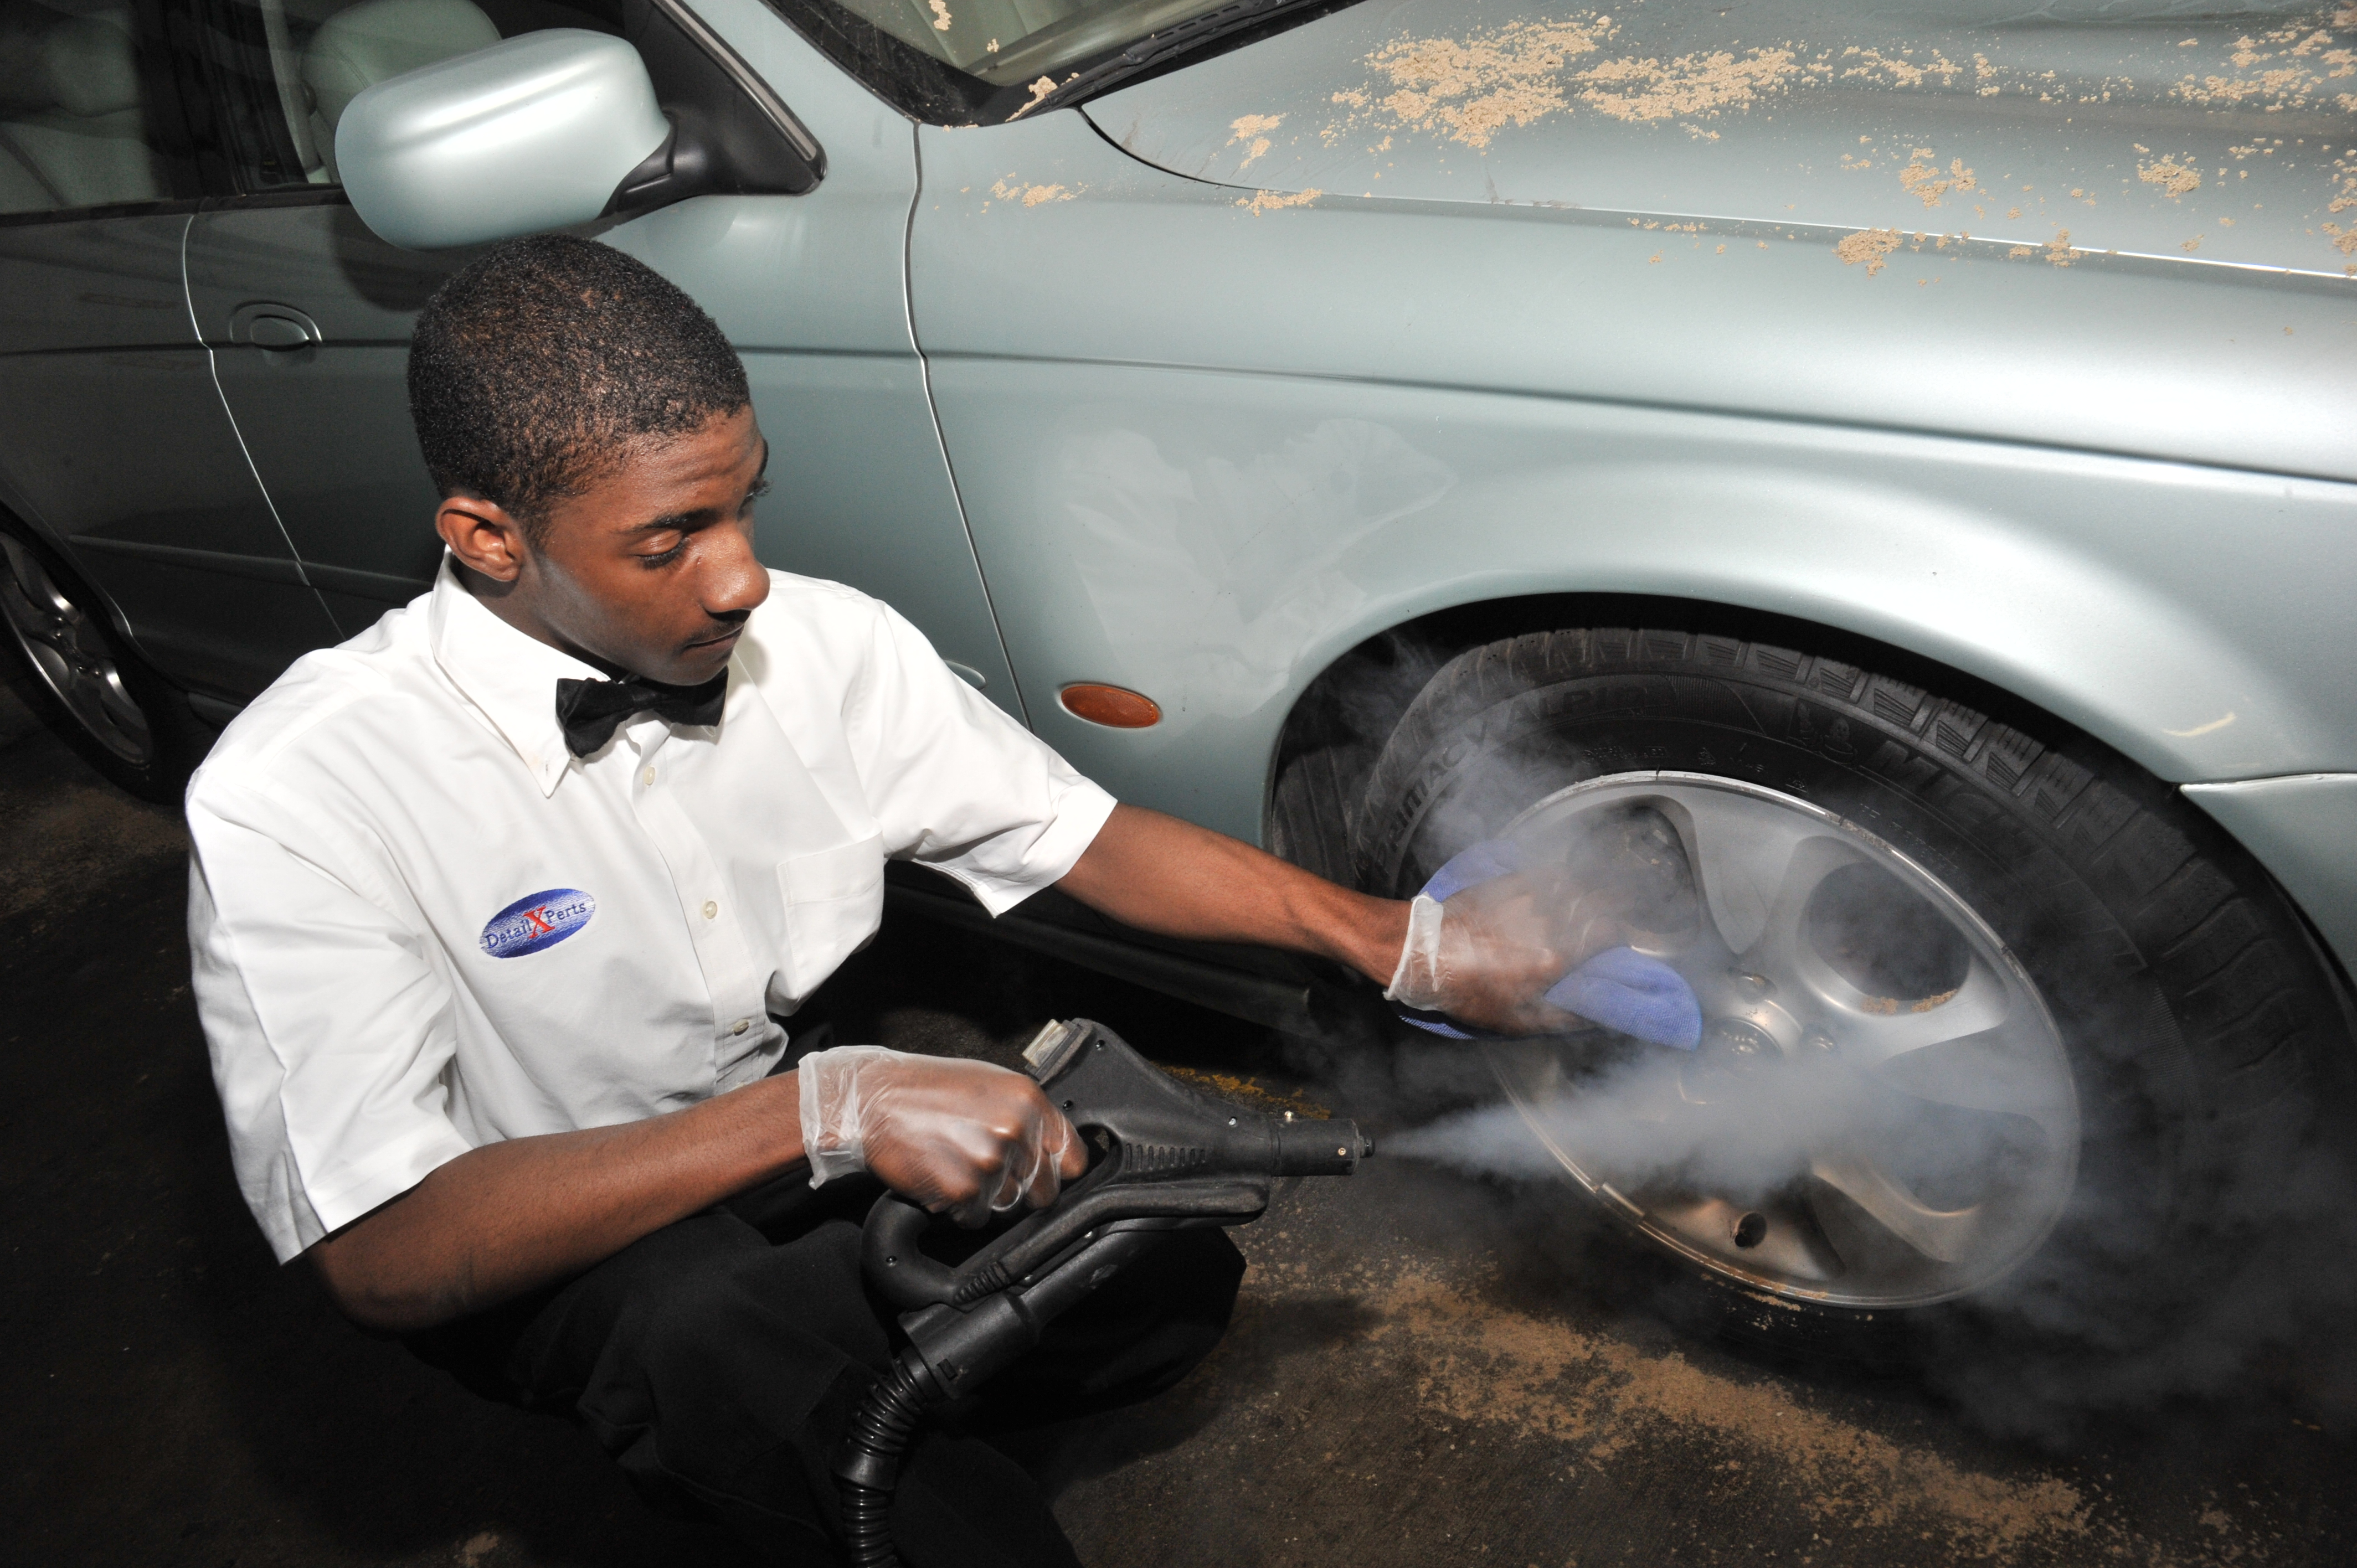 Steam Clean Your Car Exterior In 5 Easy Steps